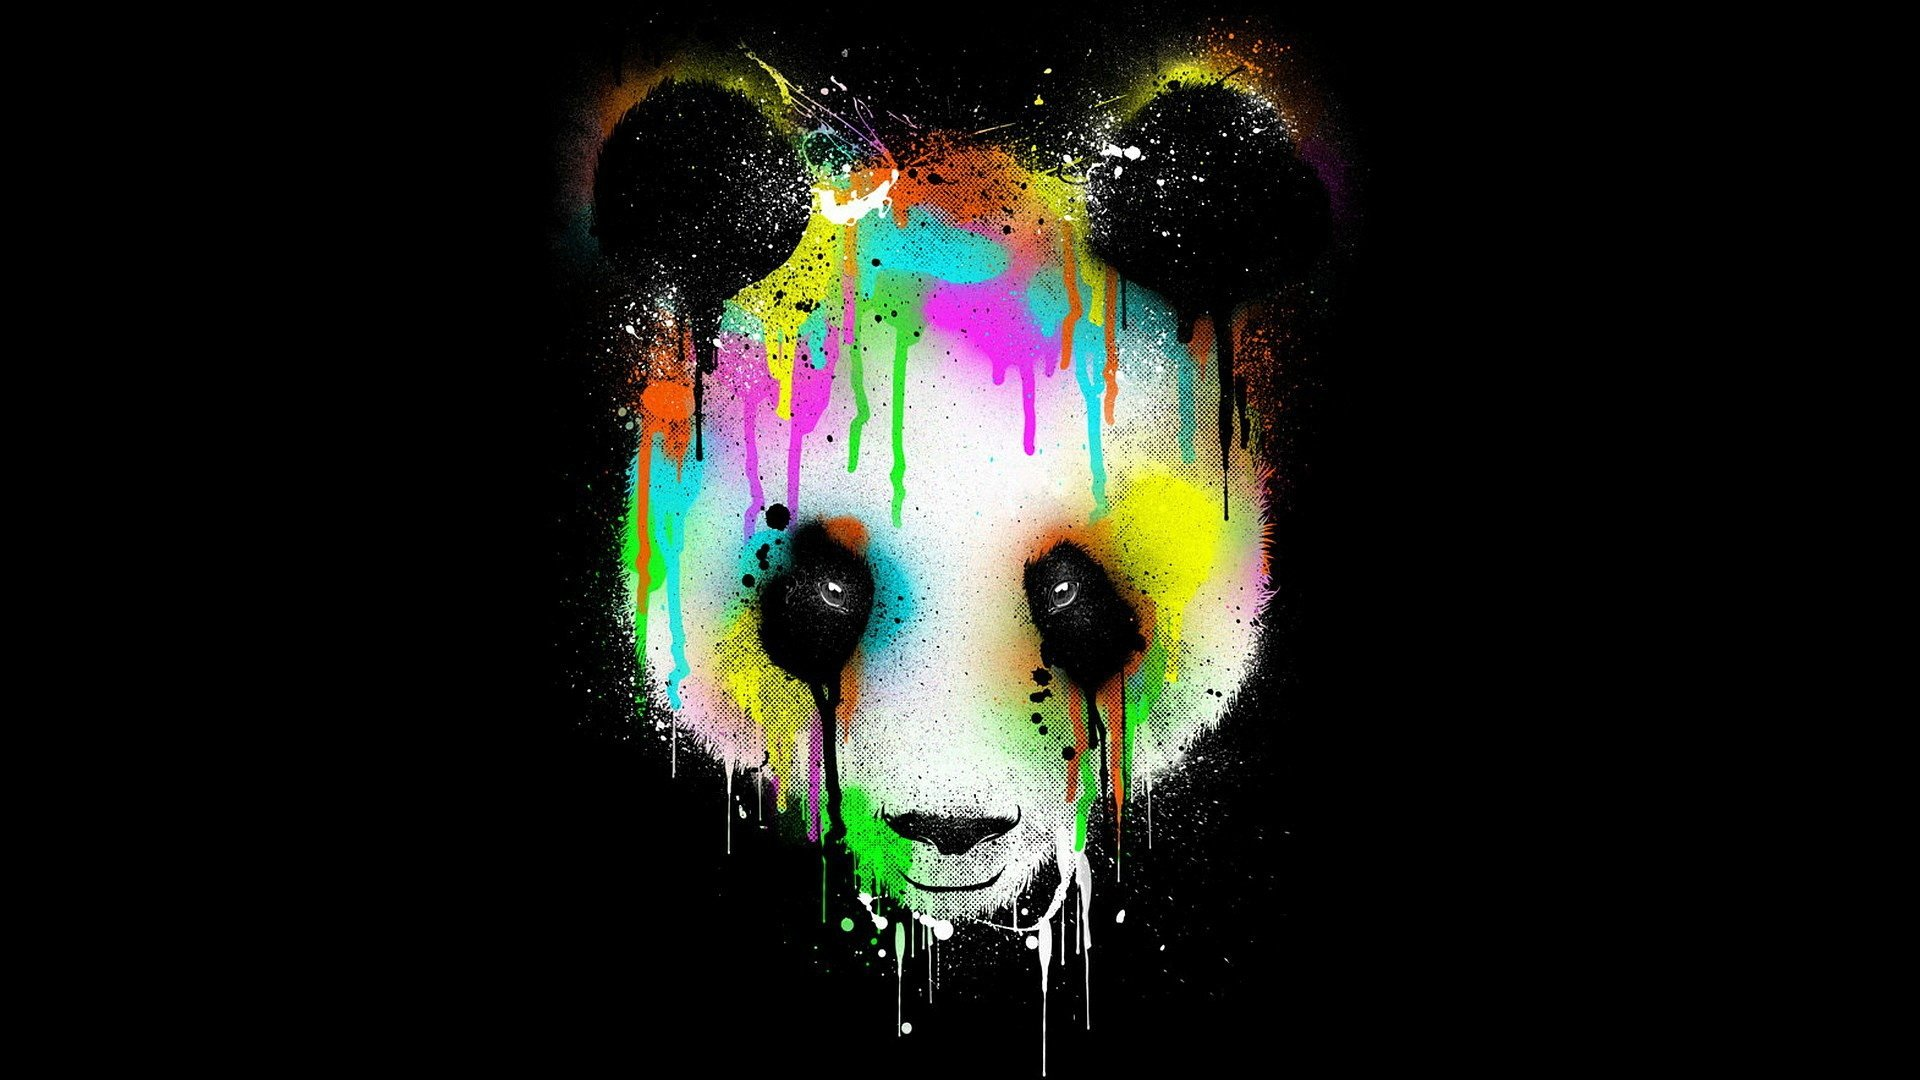 Panda full hd fondo de pantalla and fondo de escritorio for El fondo de escritorio